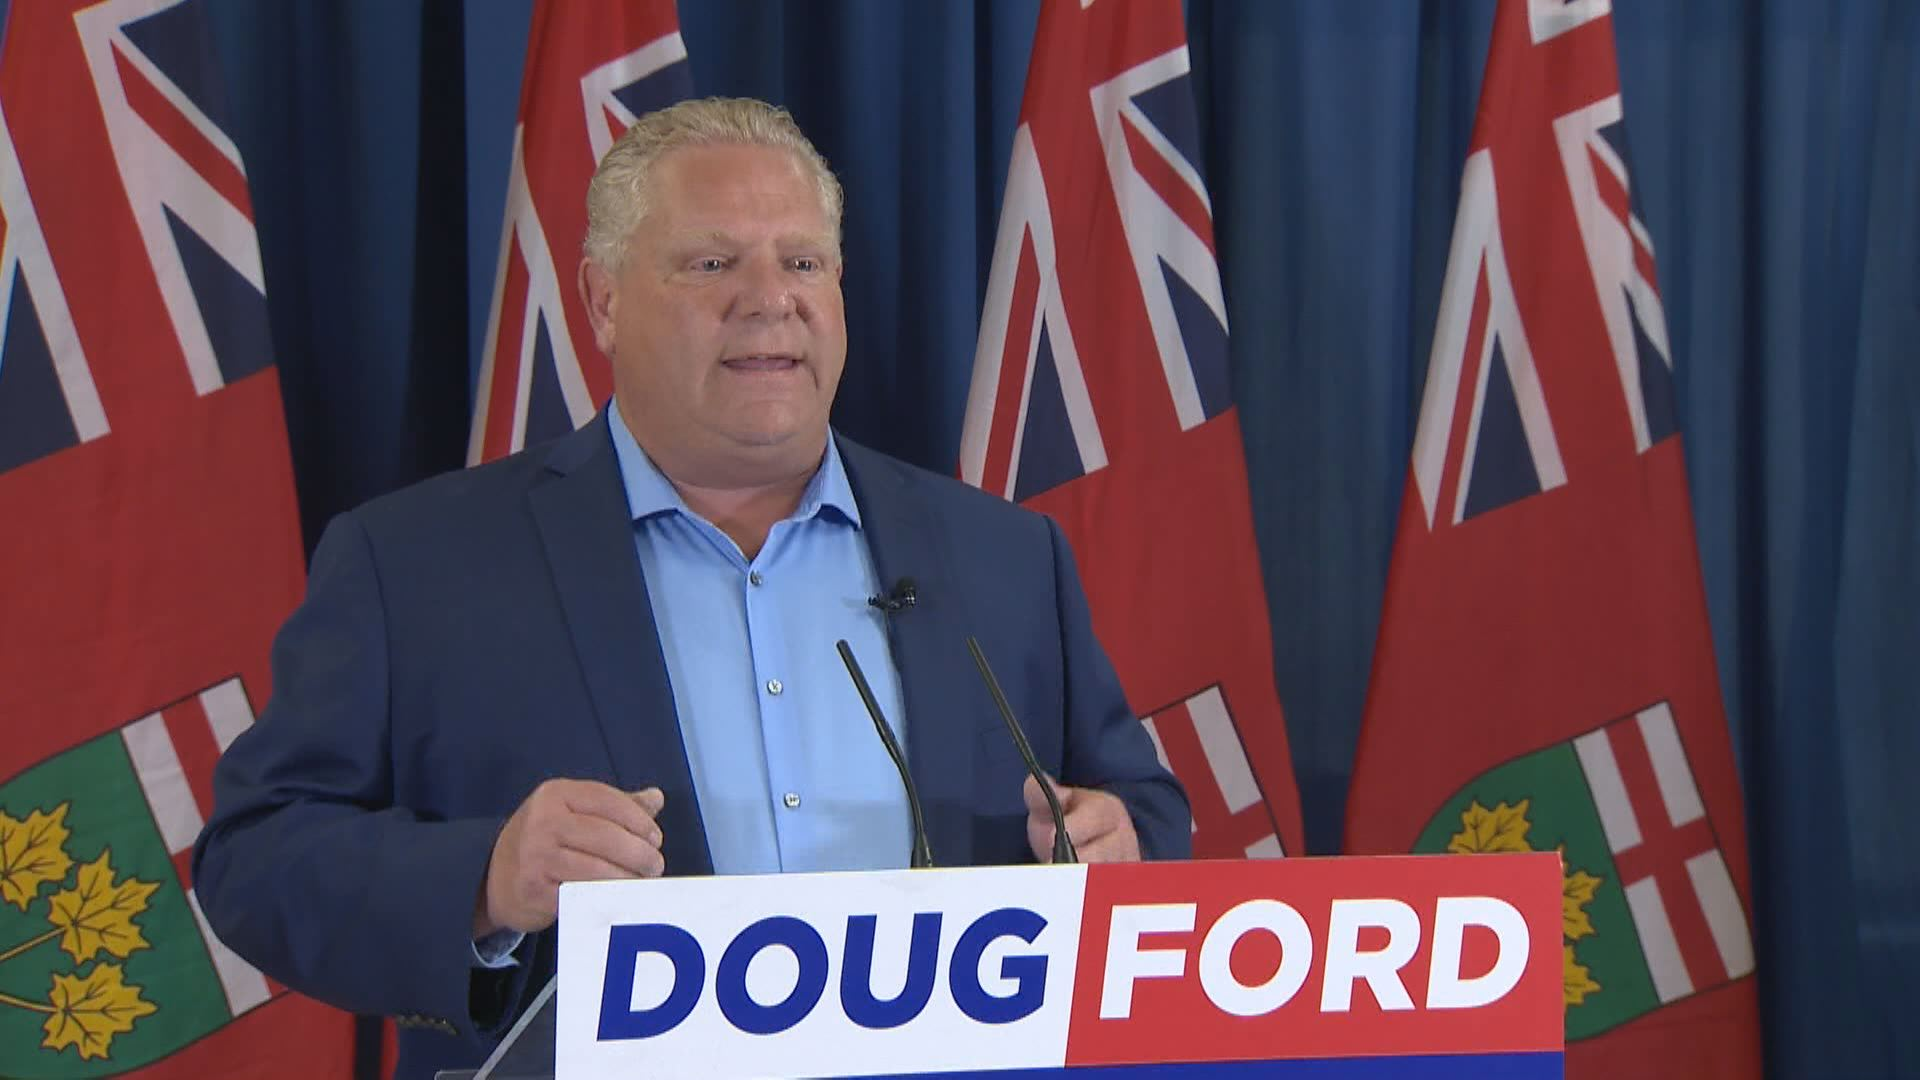 Ford broke party rules, former PCs allege